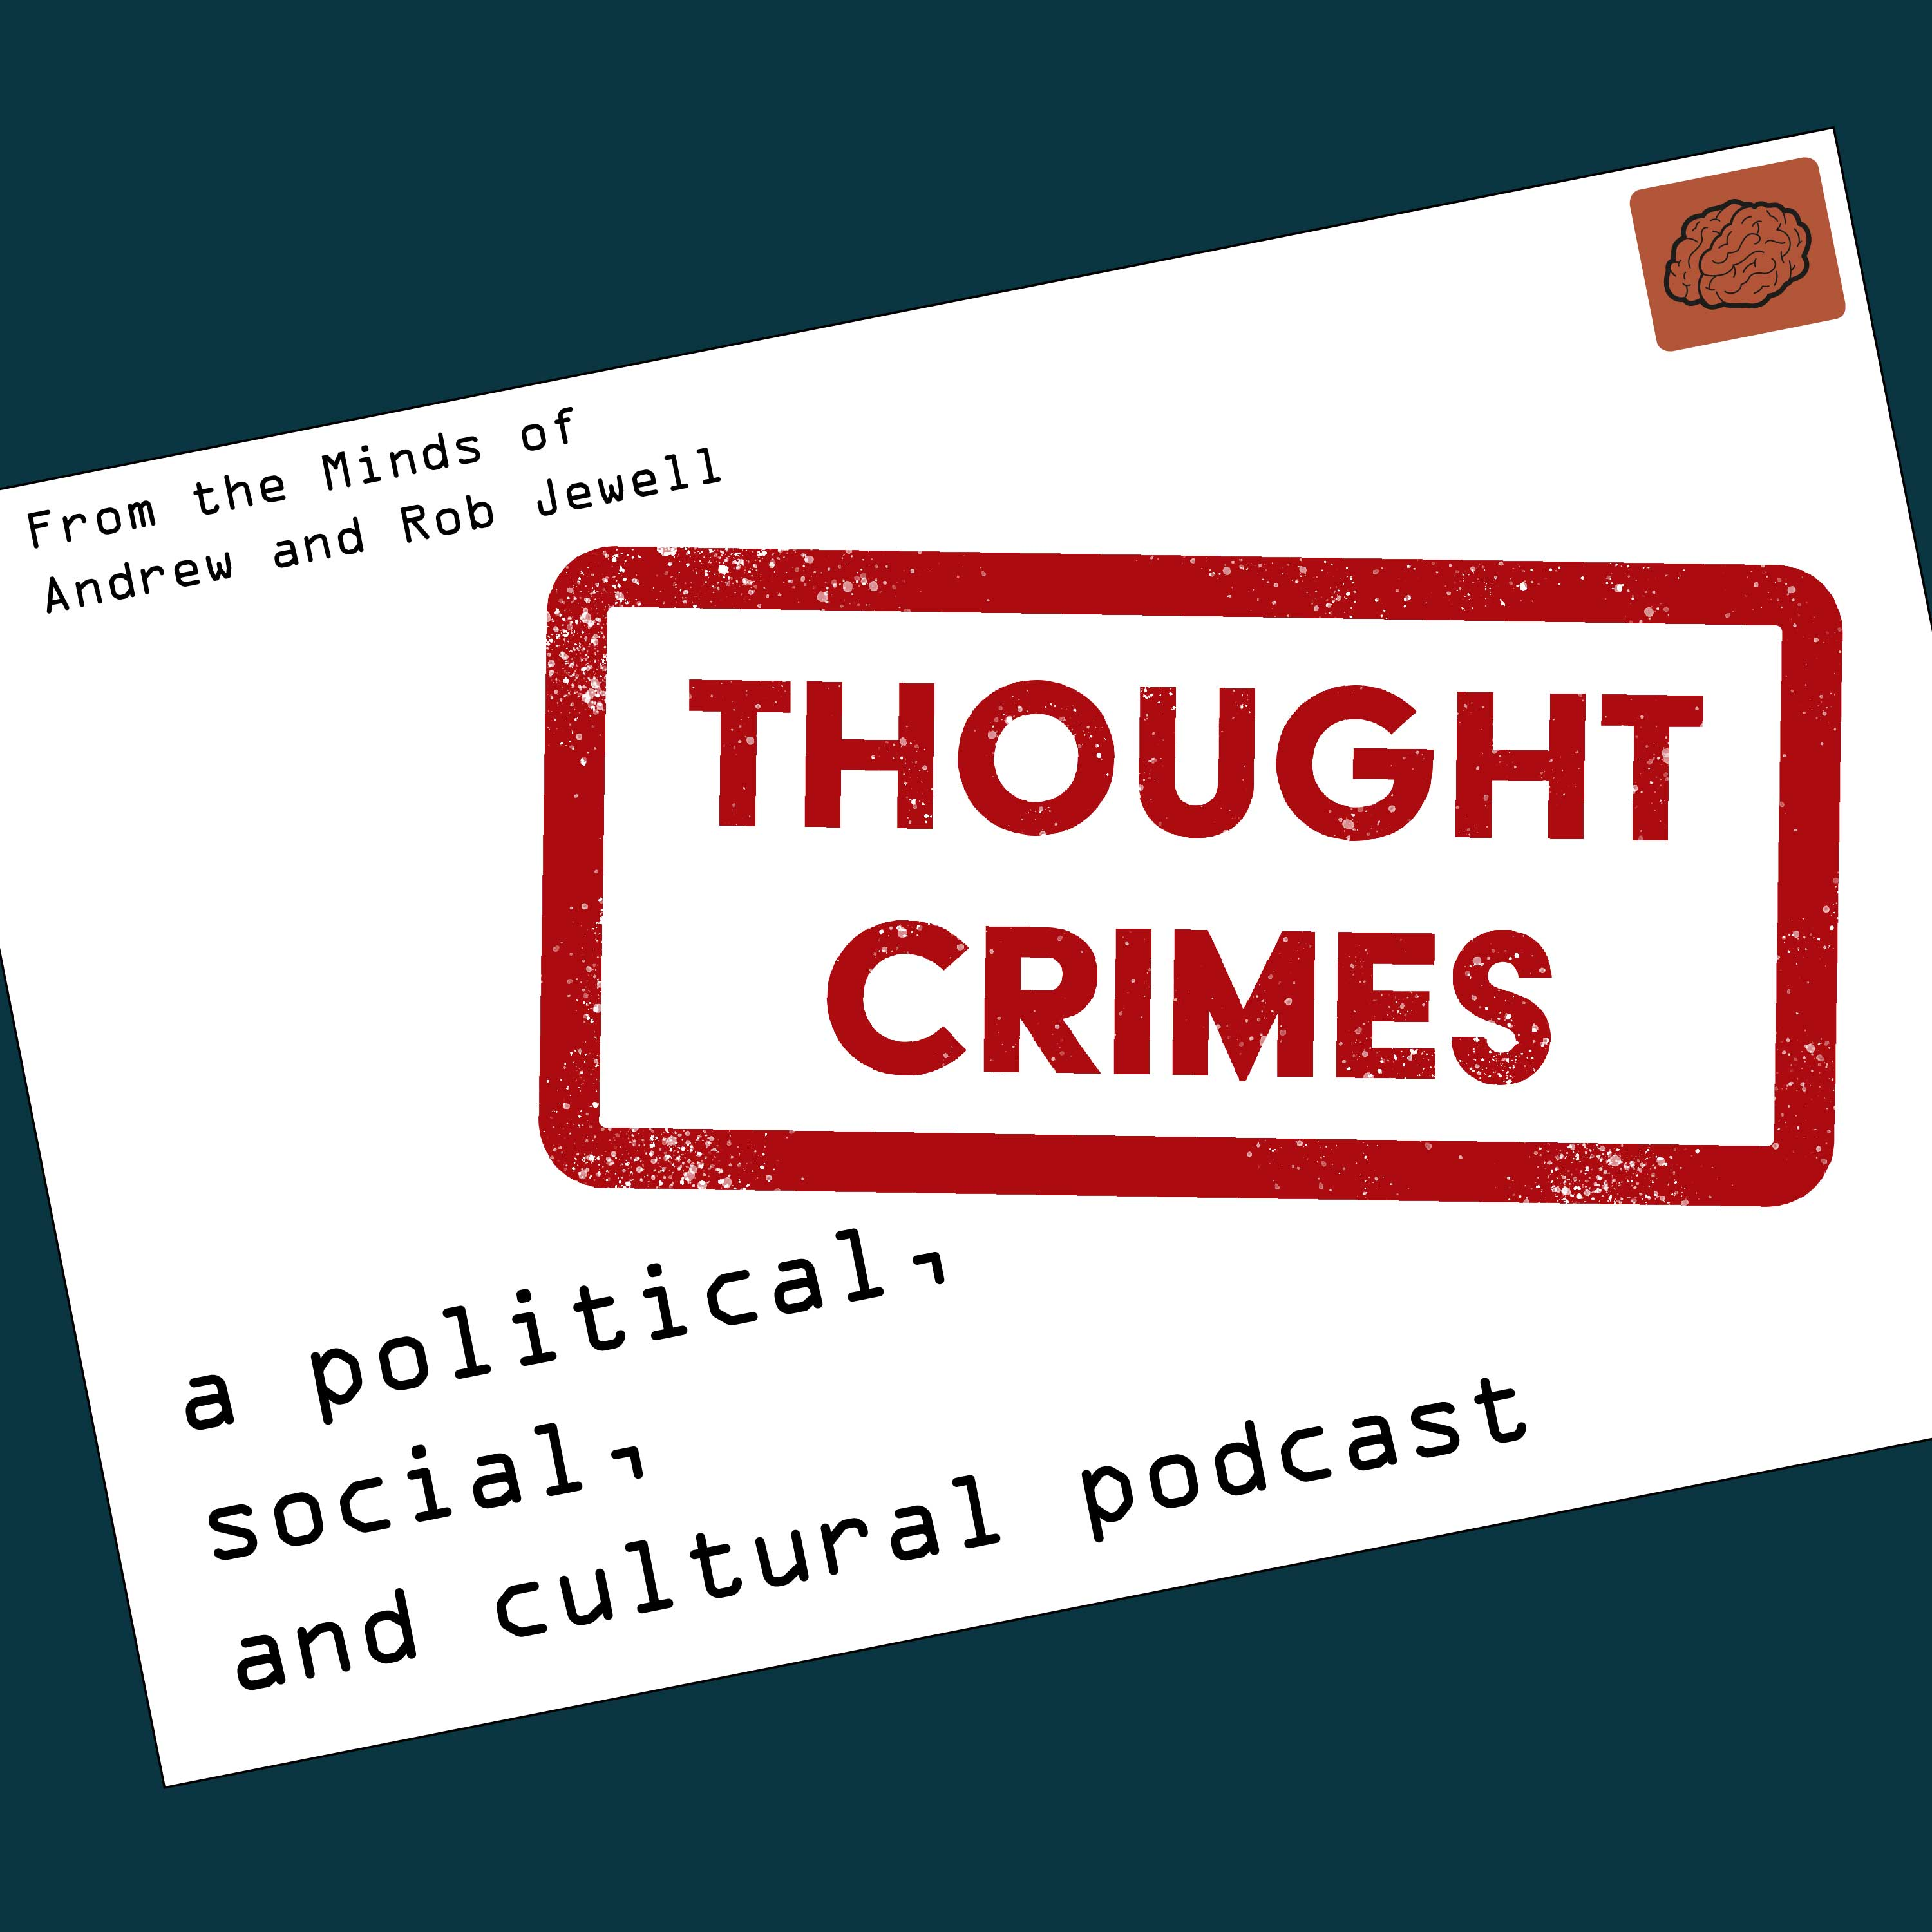 Thought Crimes 013: The White House with the #Resistance in its Walls